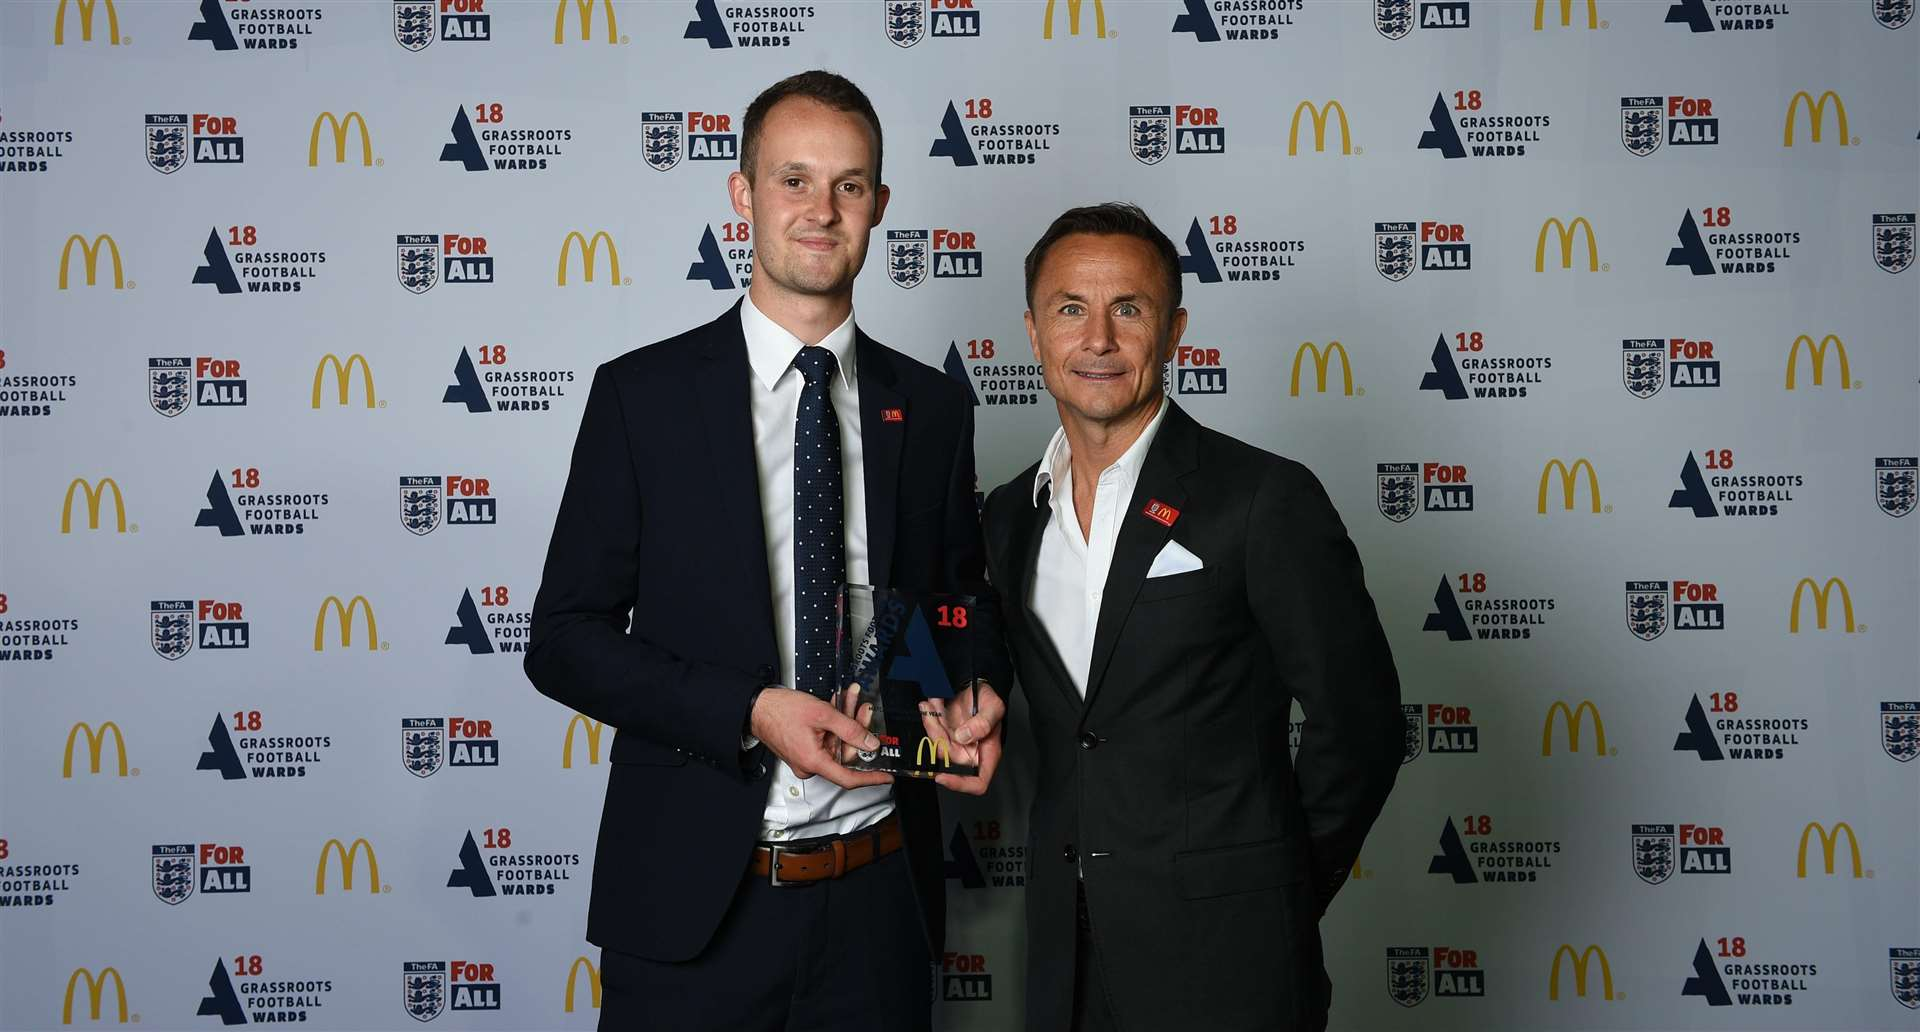 George Byrne (left) receives his Match Official of the Year award from former Chelsea and England midfielder Dennis Wise